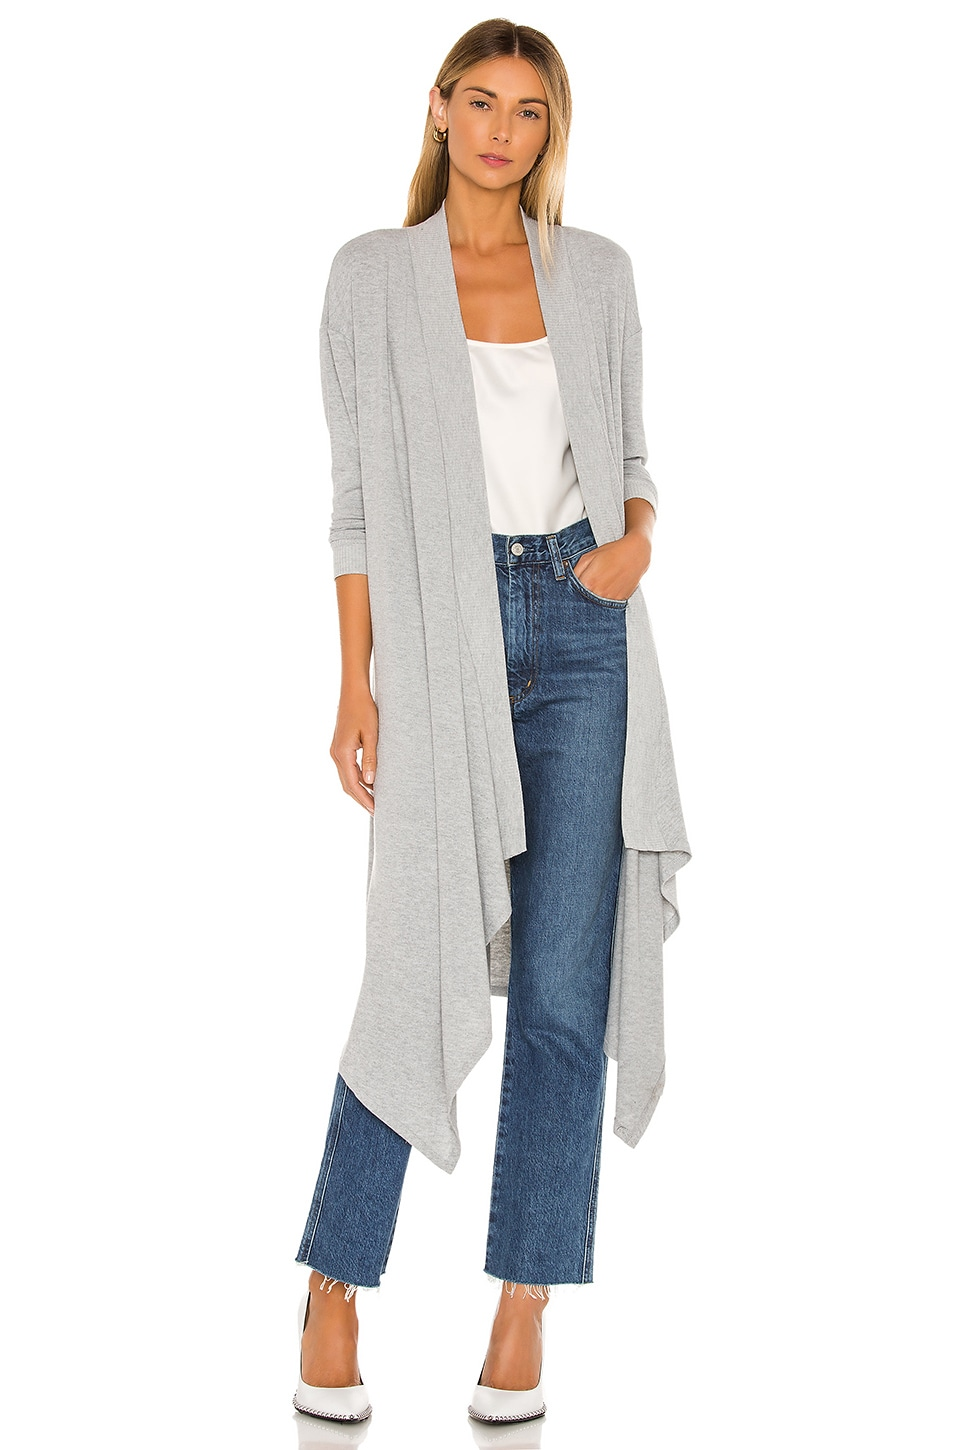 1. STATE Drap Front Maxi Cardigan in Silver Heather